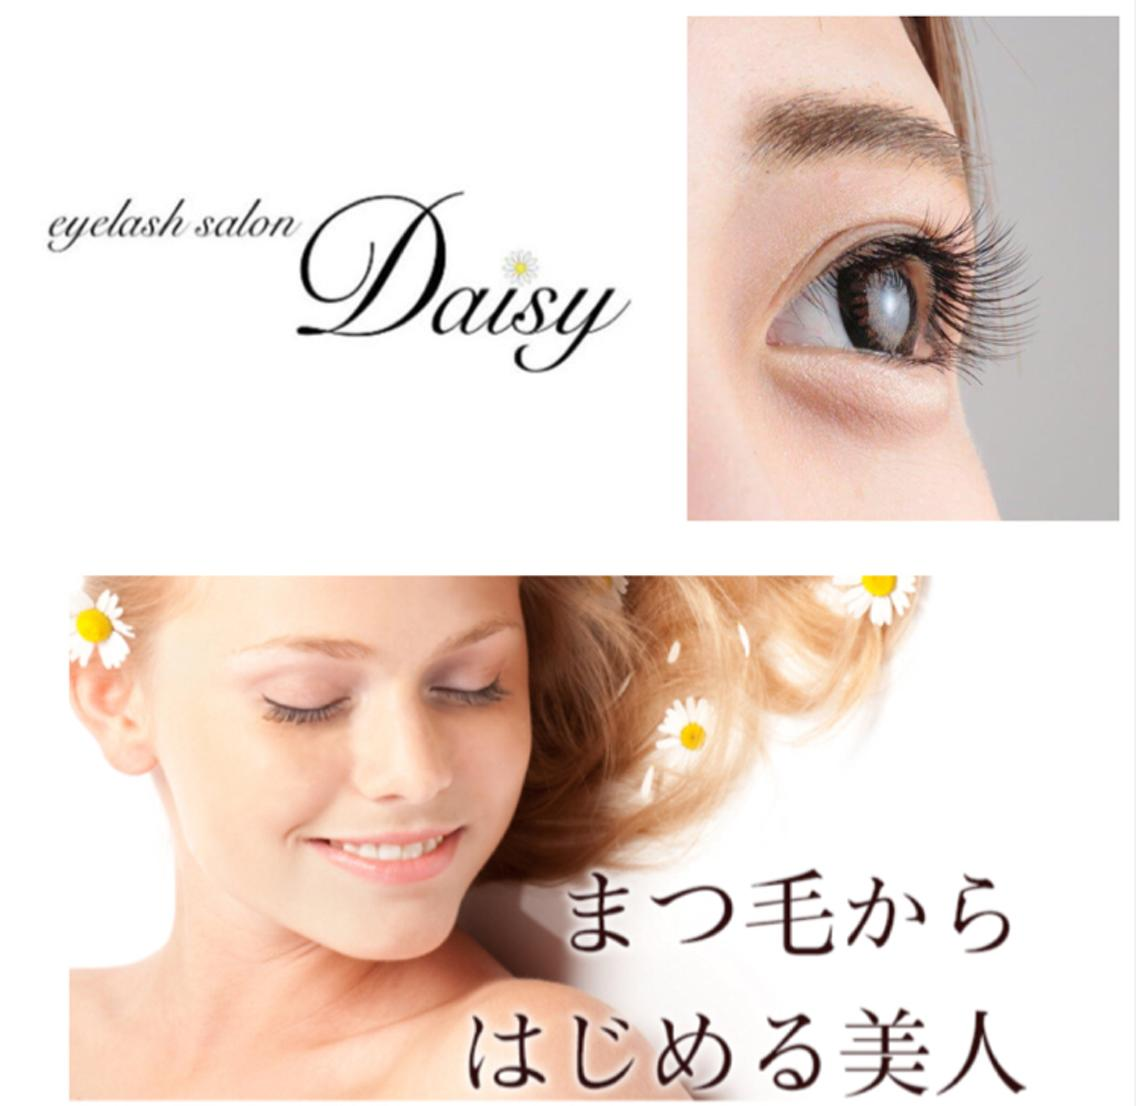 eyelash salon Daisy所属・eyelashdaisyの掲載